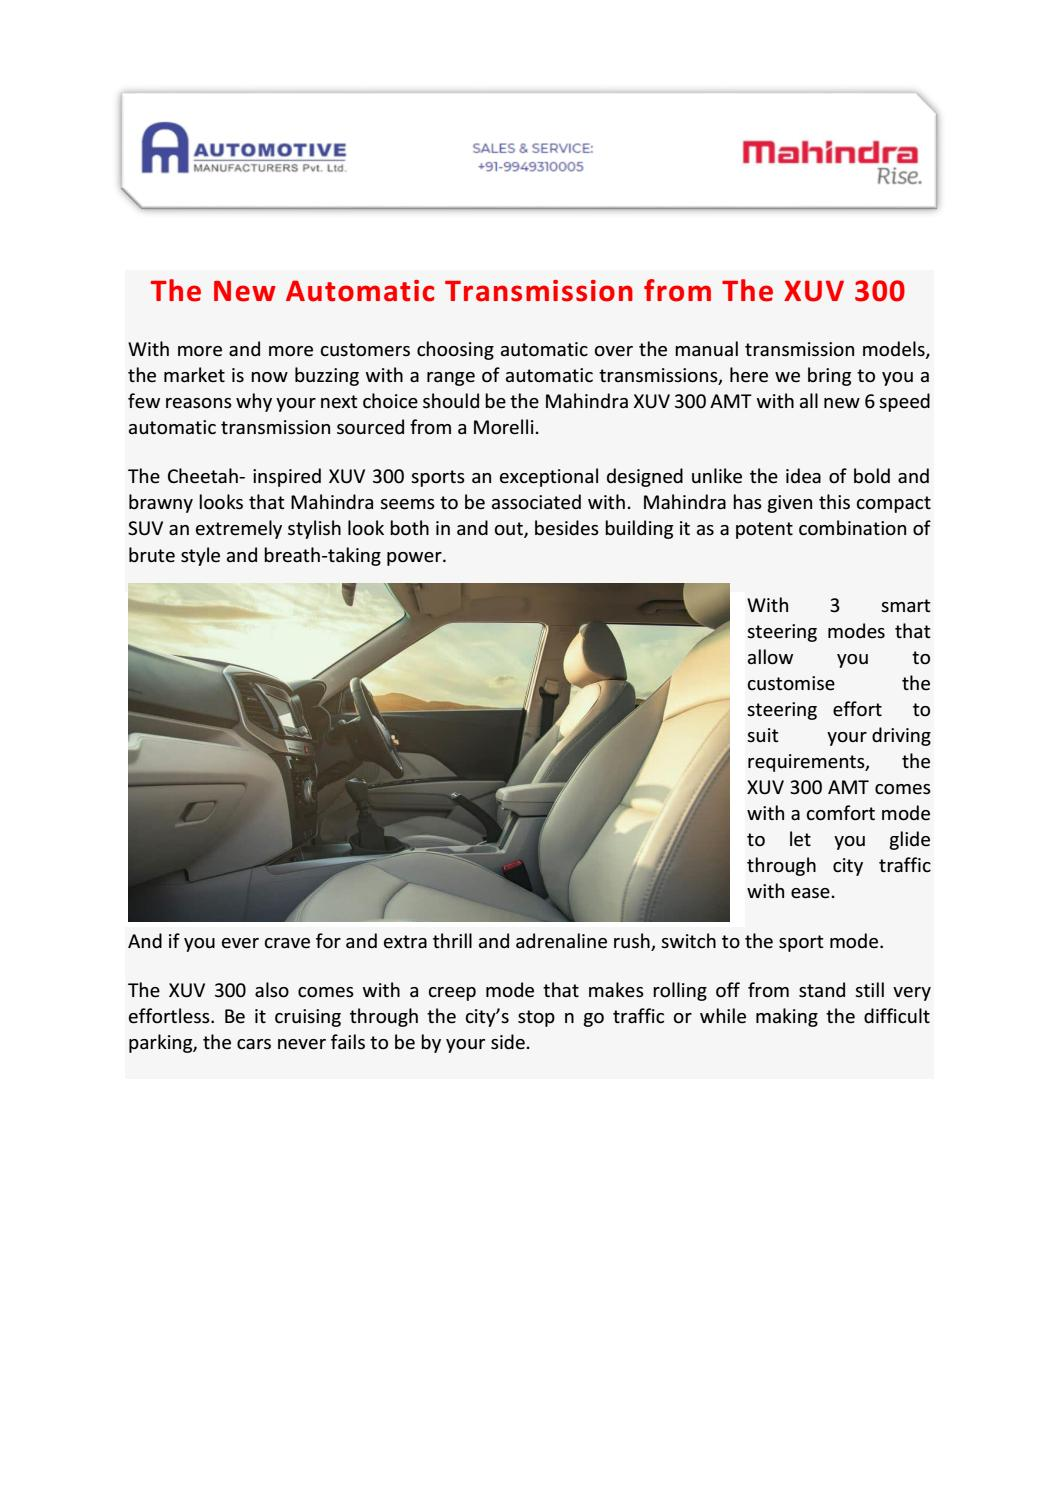 The New Automatic Transmission From The Xuv 300 By Automotivemlmahindra Issuu